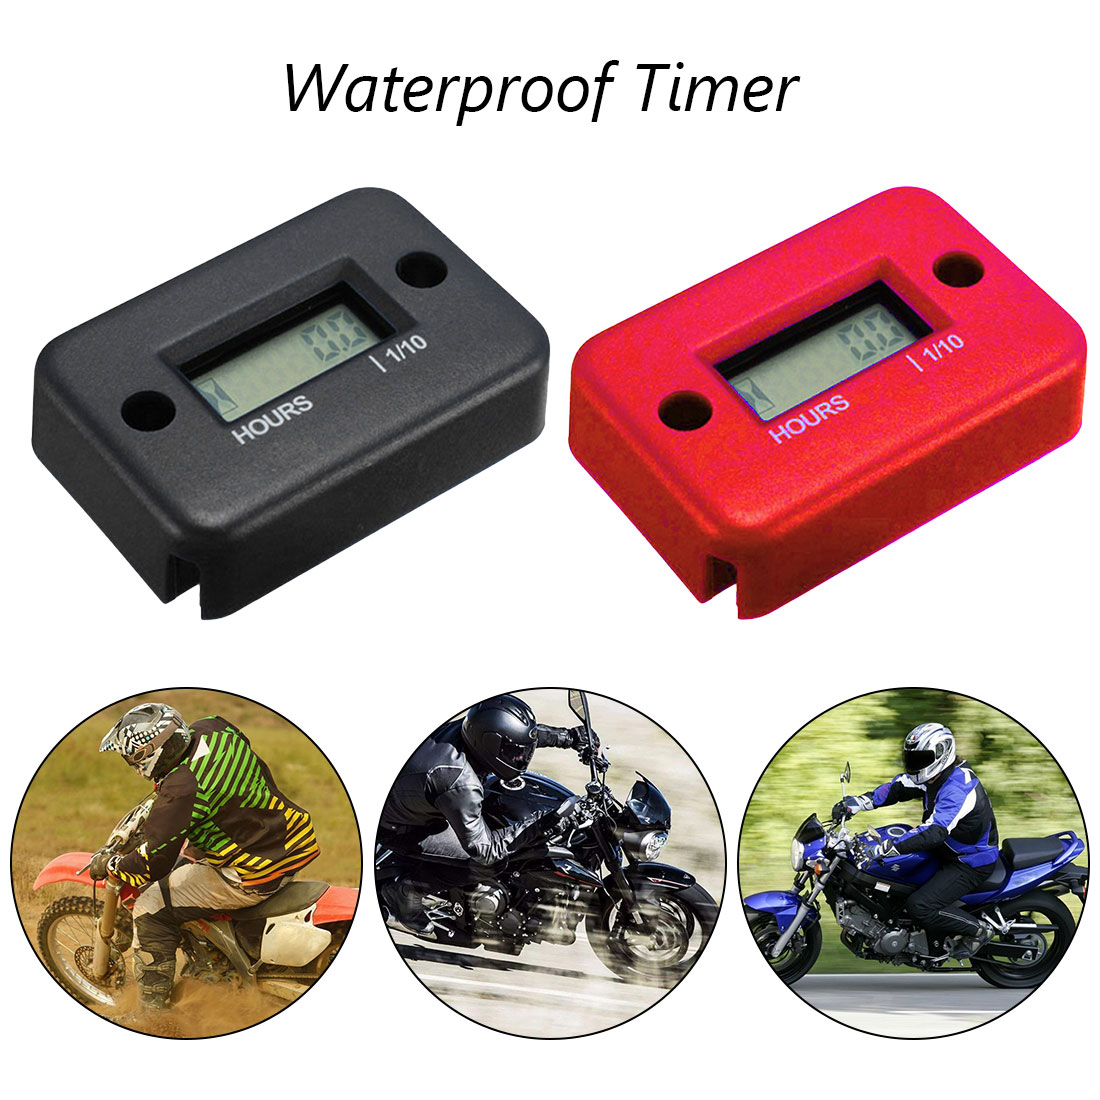 Green NKTECH NK-HS2 Inductive Hour Meter for Gas Engine Lawn Mover Marine ATV Motorcycle Boat Snowmobile Dirt Bike Outboard Motor Generator Waterproof Hourmeter